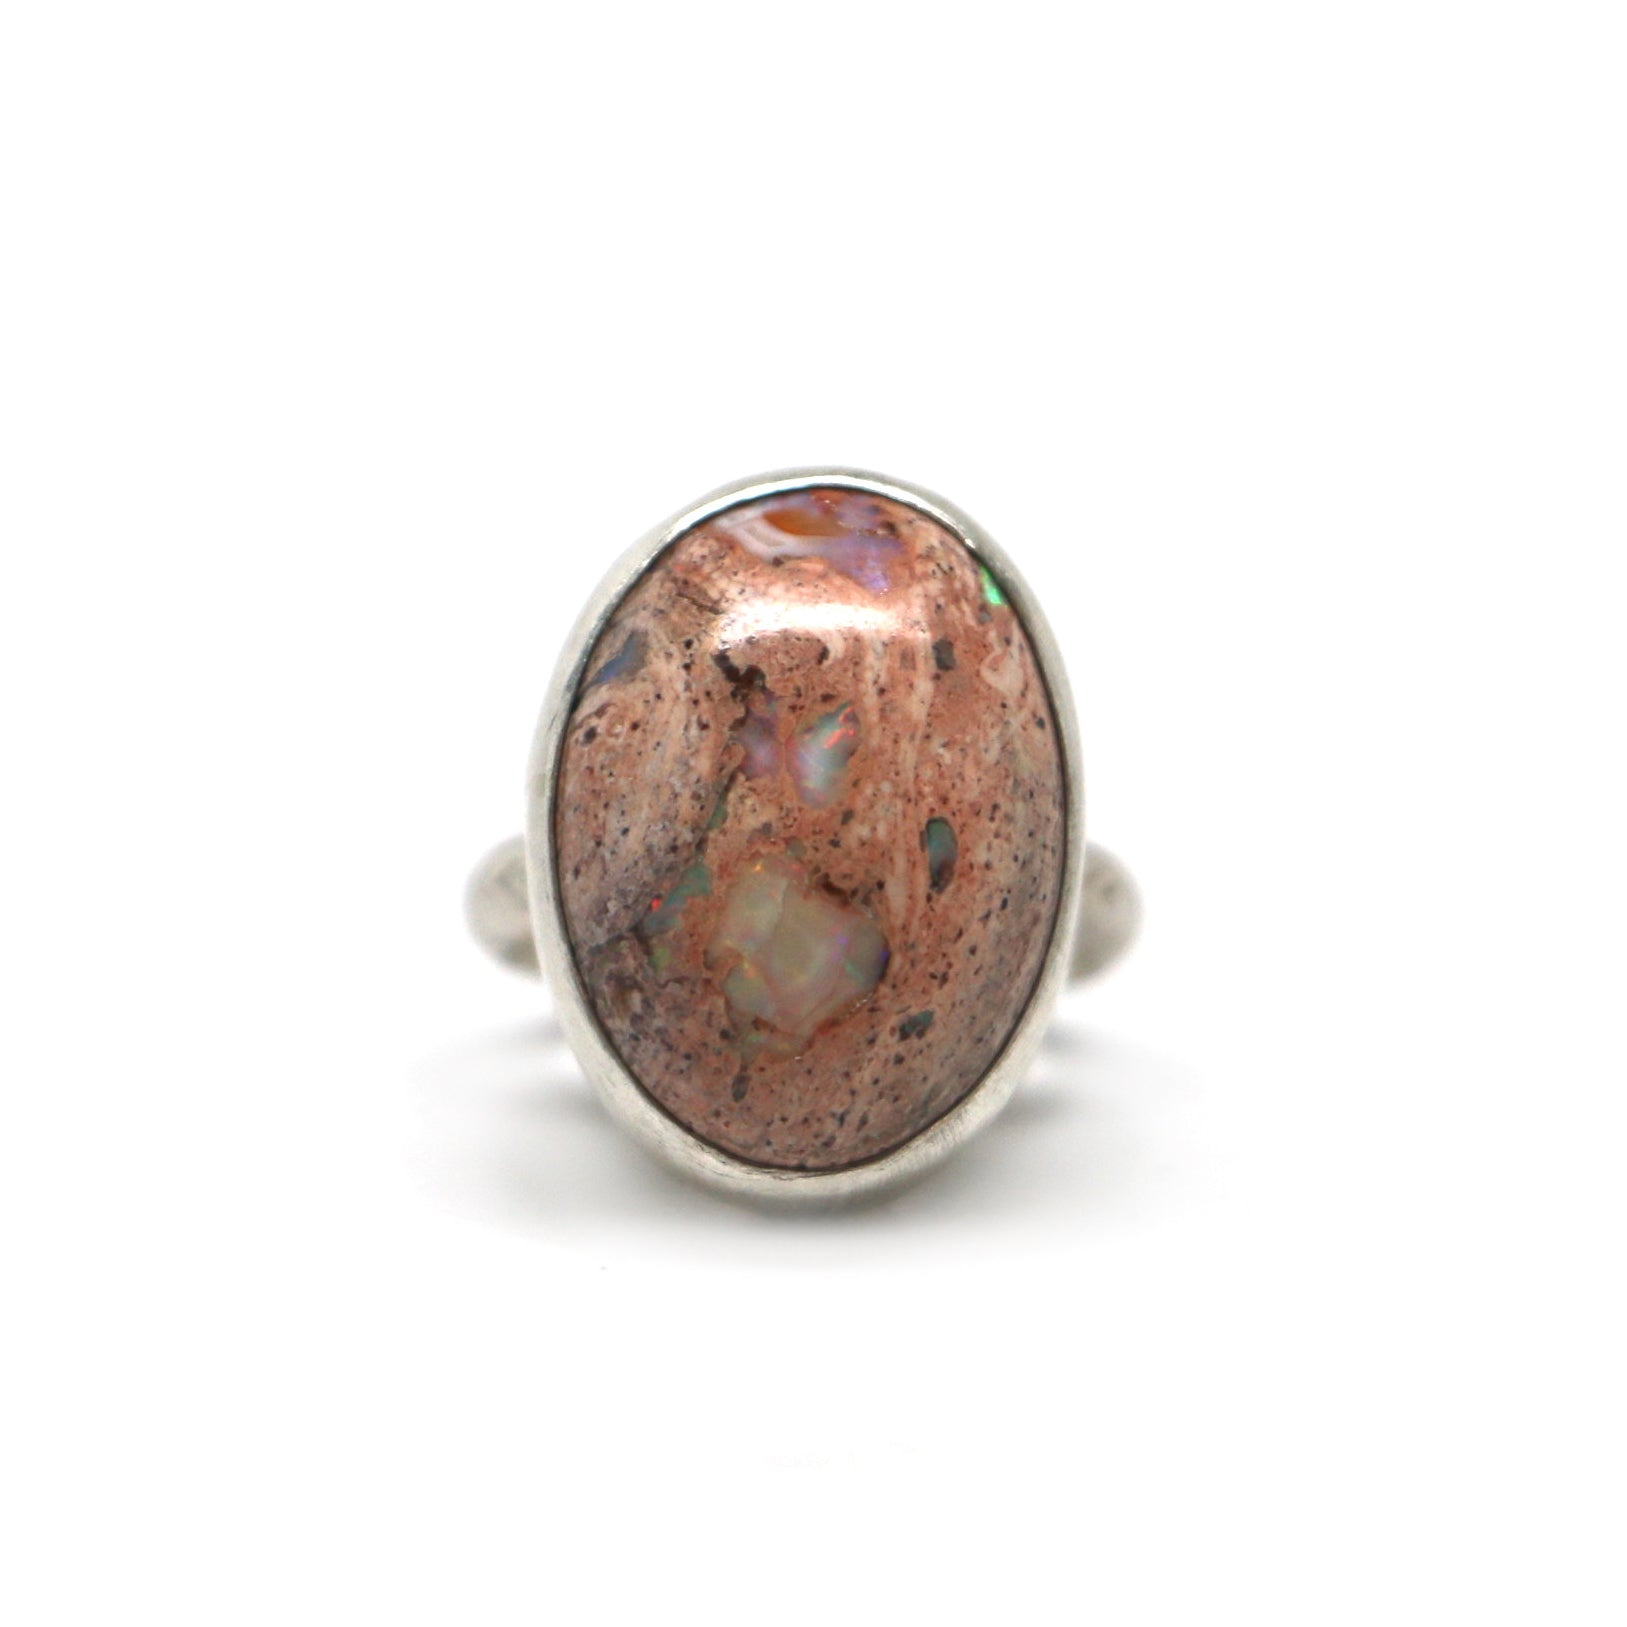 Mexican Opal Ring - Size 7.5